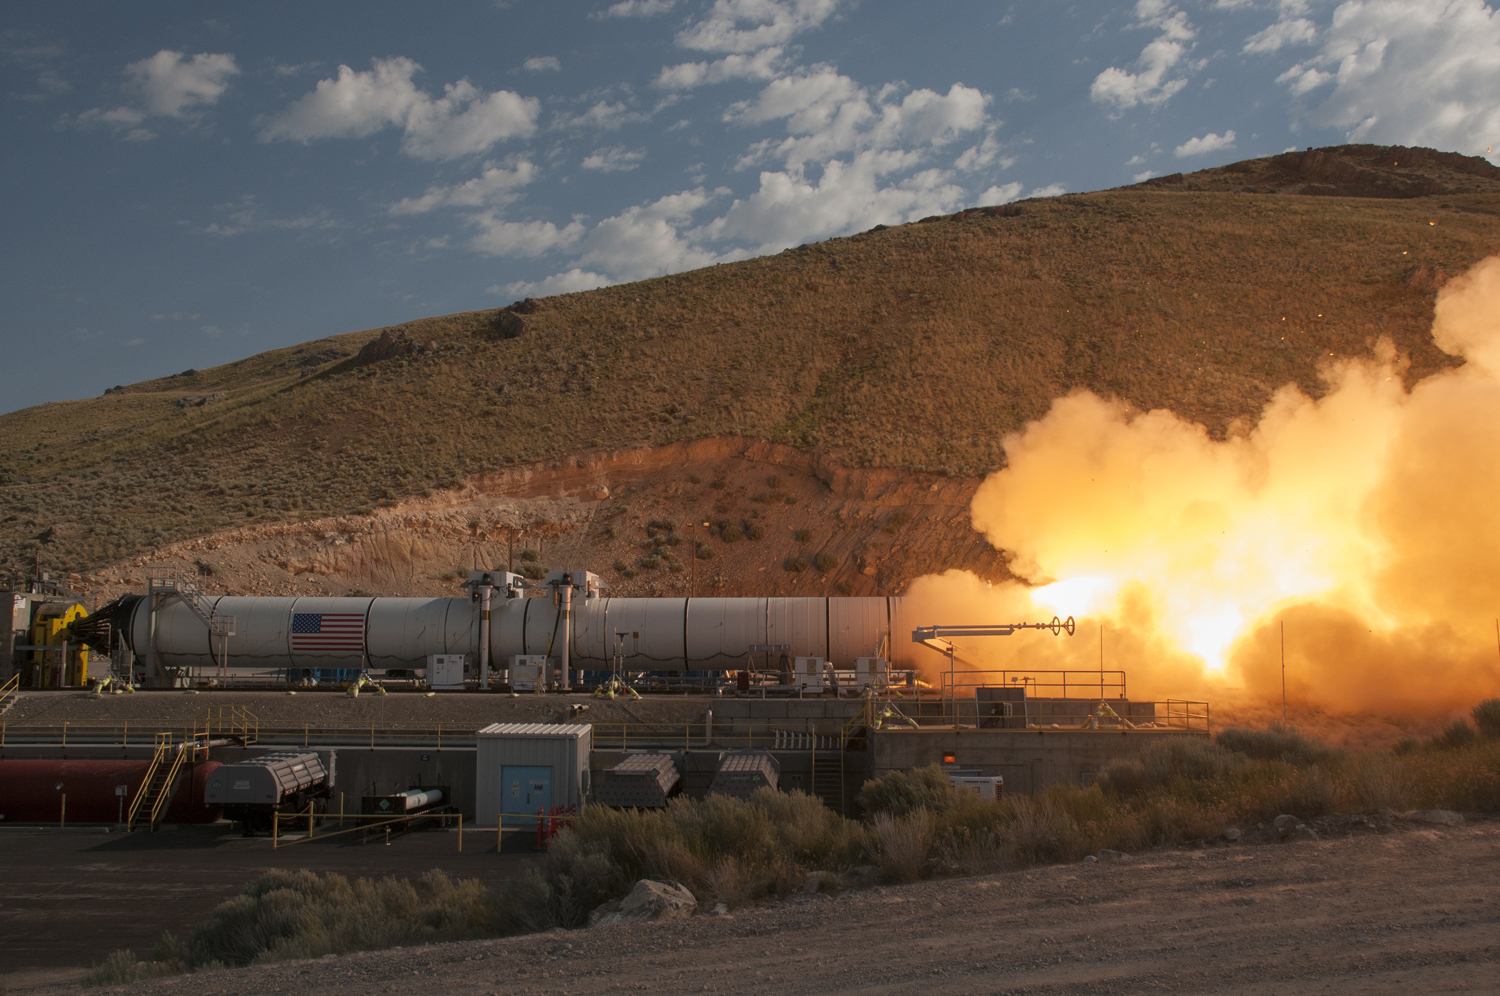 This Orbital ATK-manufactured, full-scale solid rocket booster qualification test motor blasted 3.6 million pounds of thrust during the two minute test in June. Two boosters will provide initial thrust to boost the SLS and Orion off the launch pad. (Photo: Business Wire)